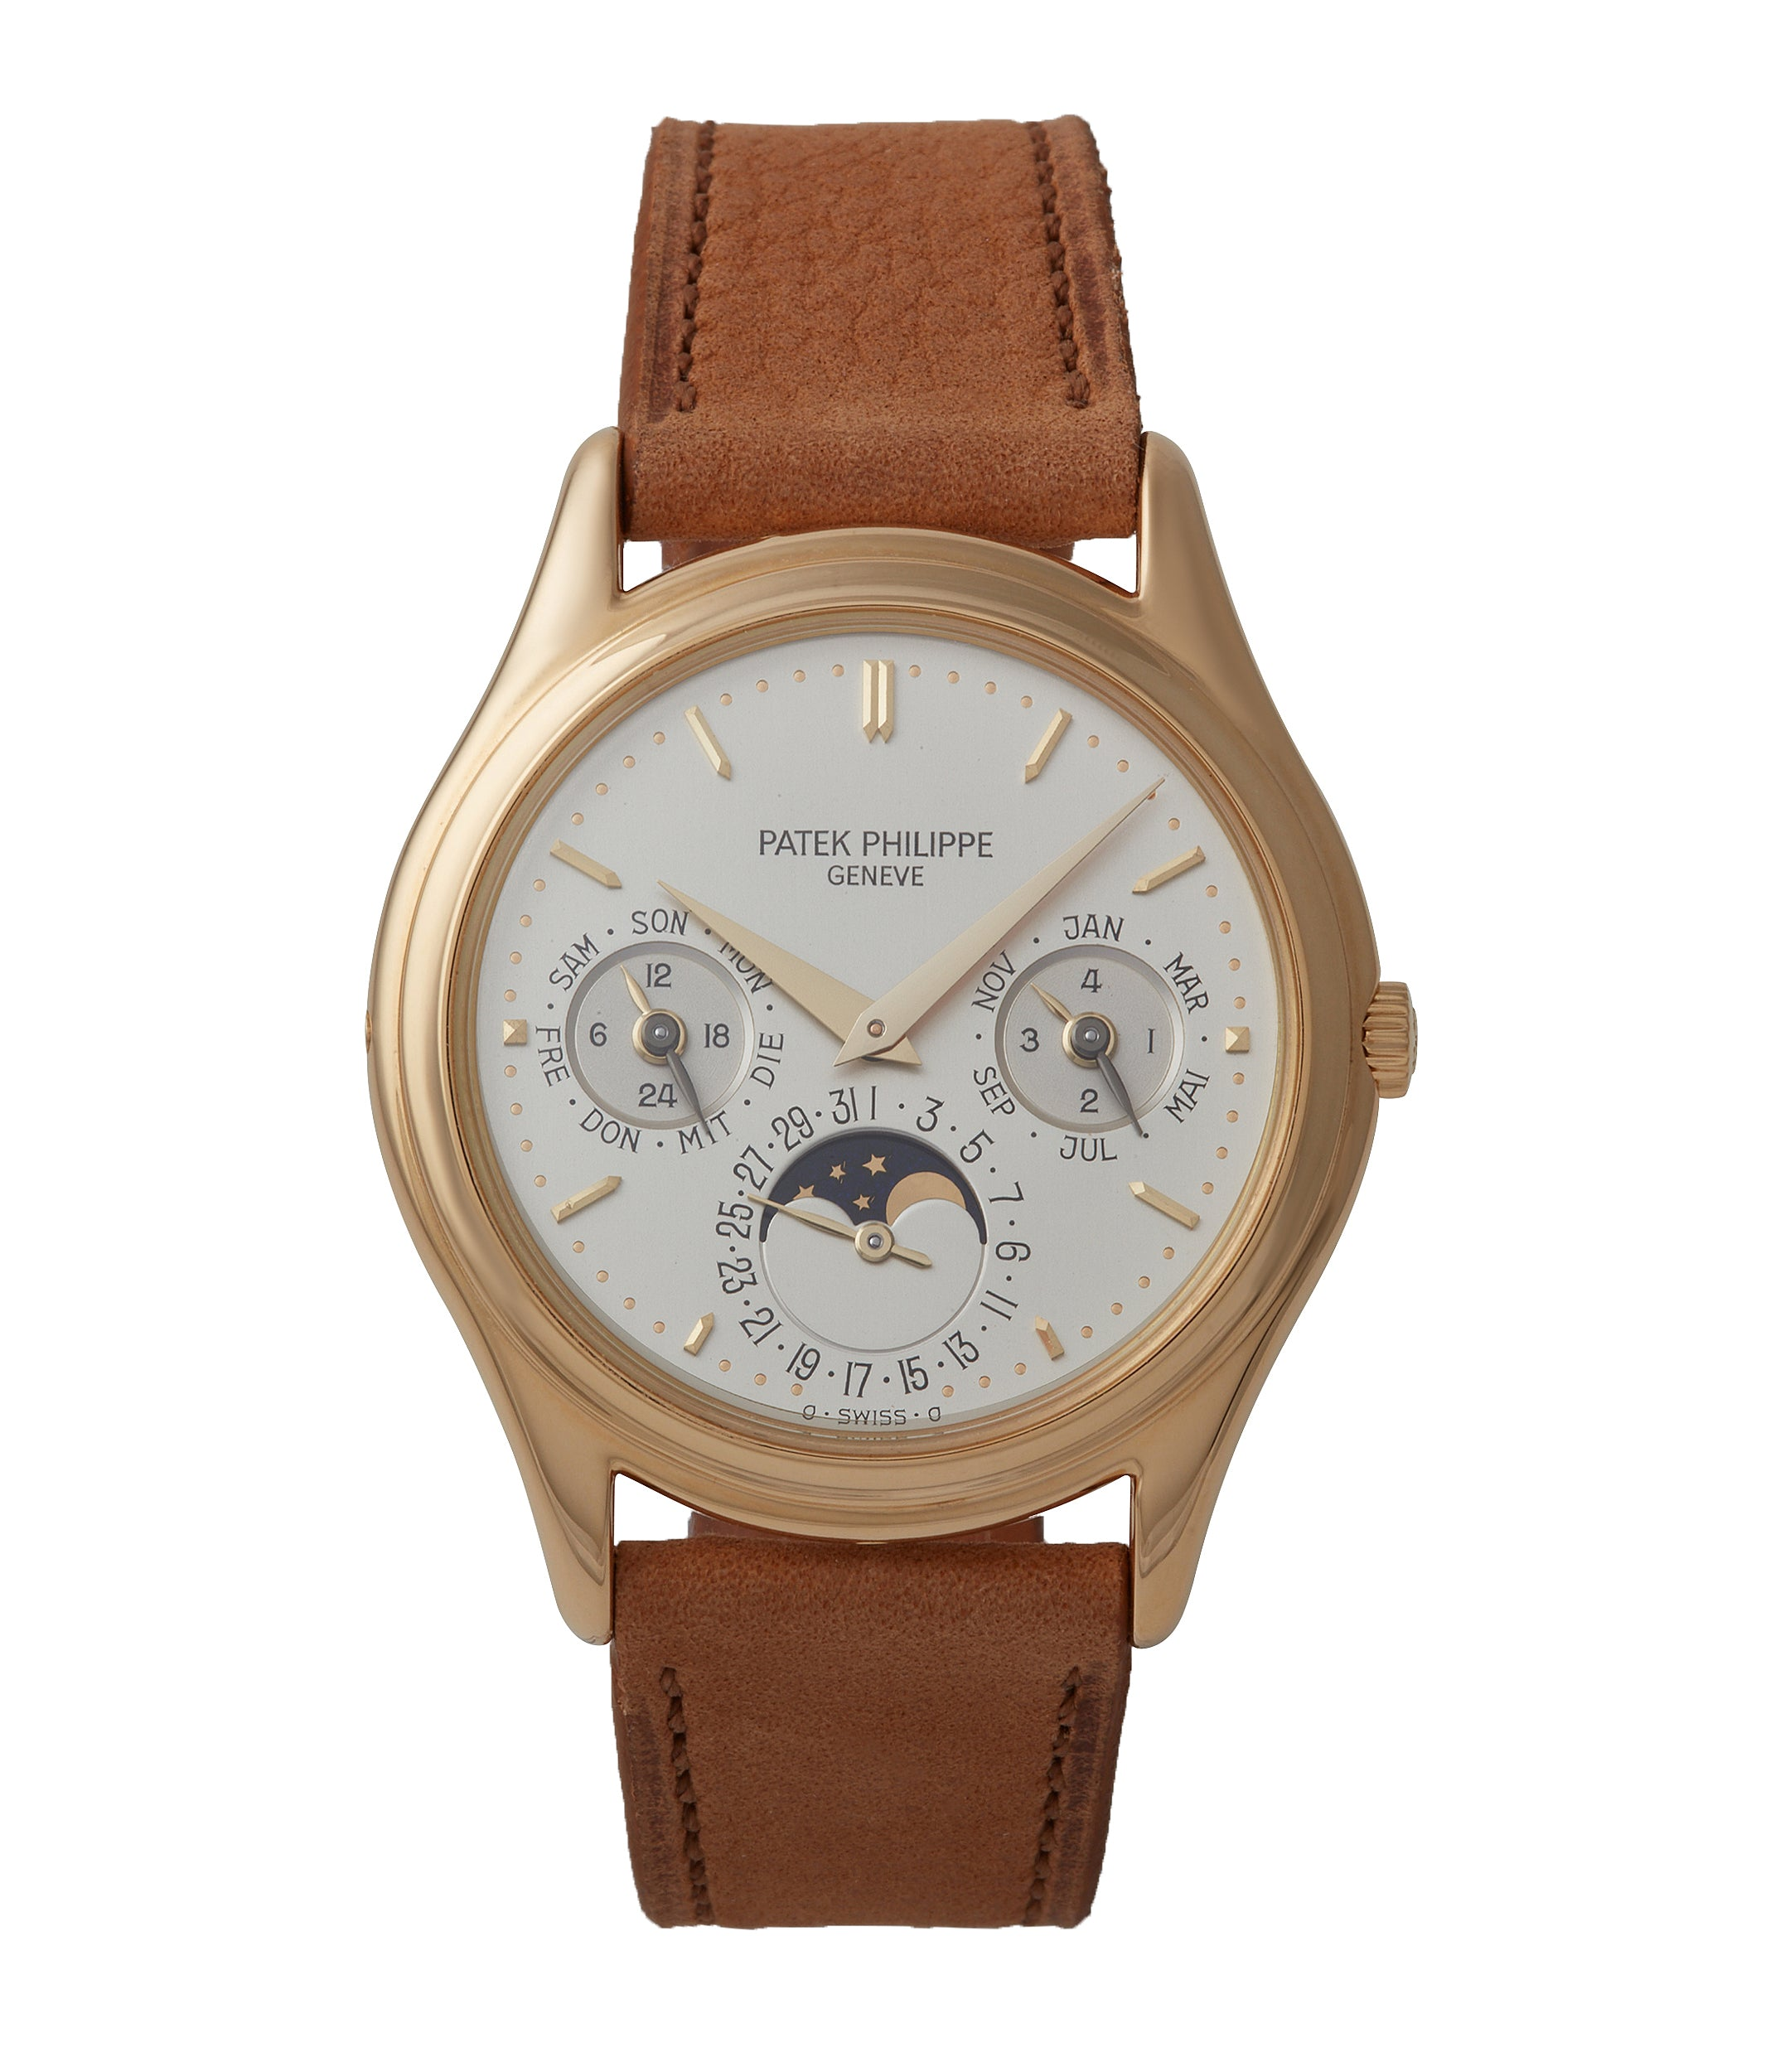 buy Patek Philippe 3940J first series yellow gold perpetual calendar dress watch for sale online at A Collected Man London